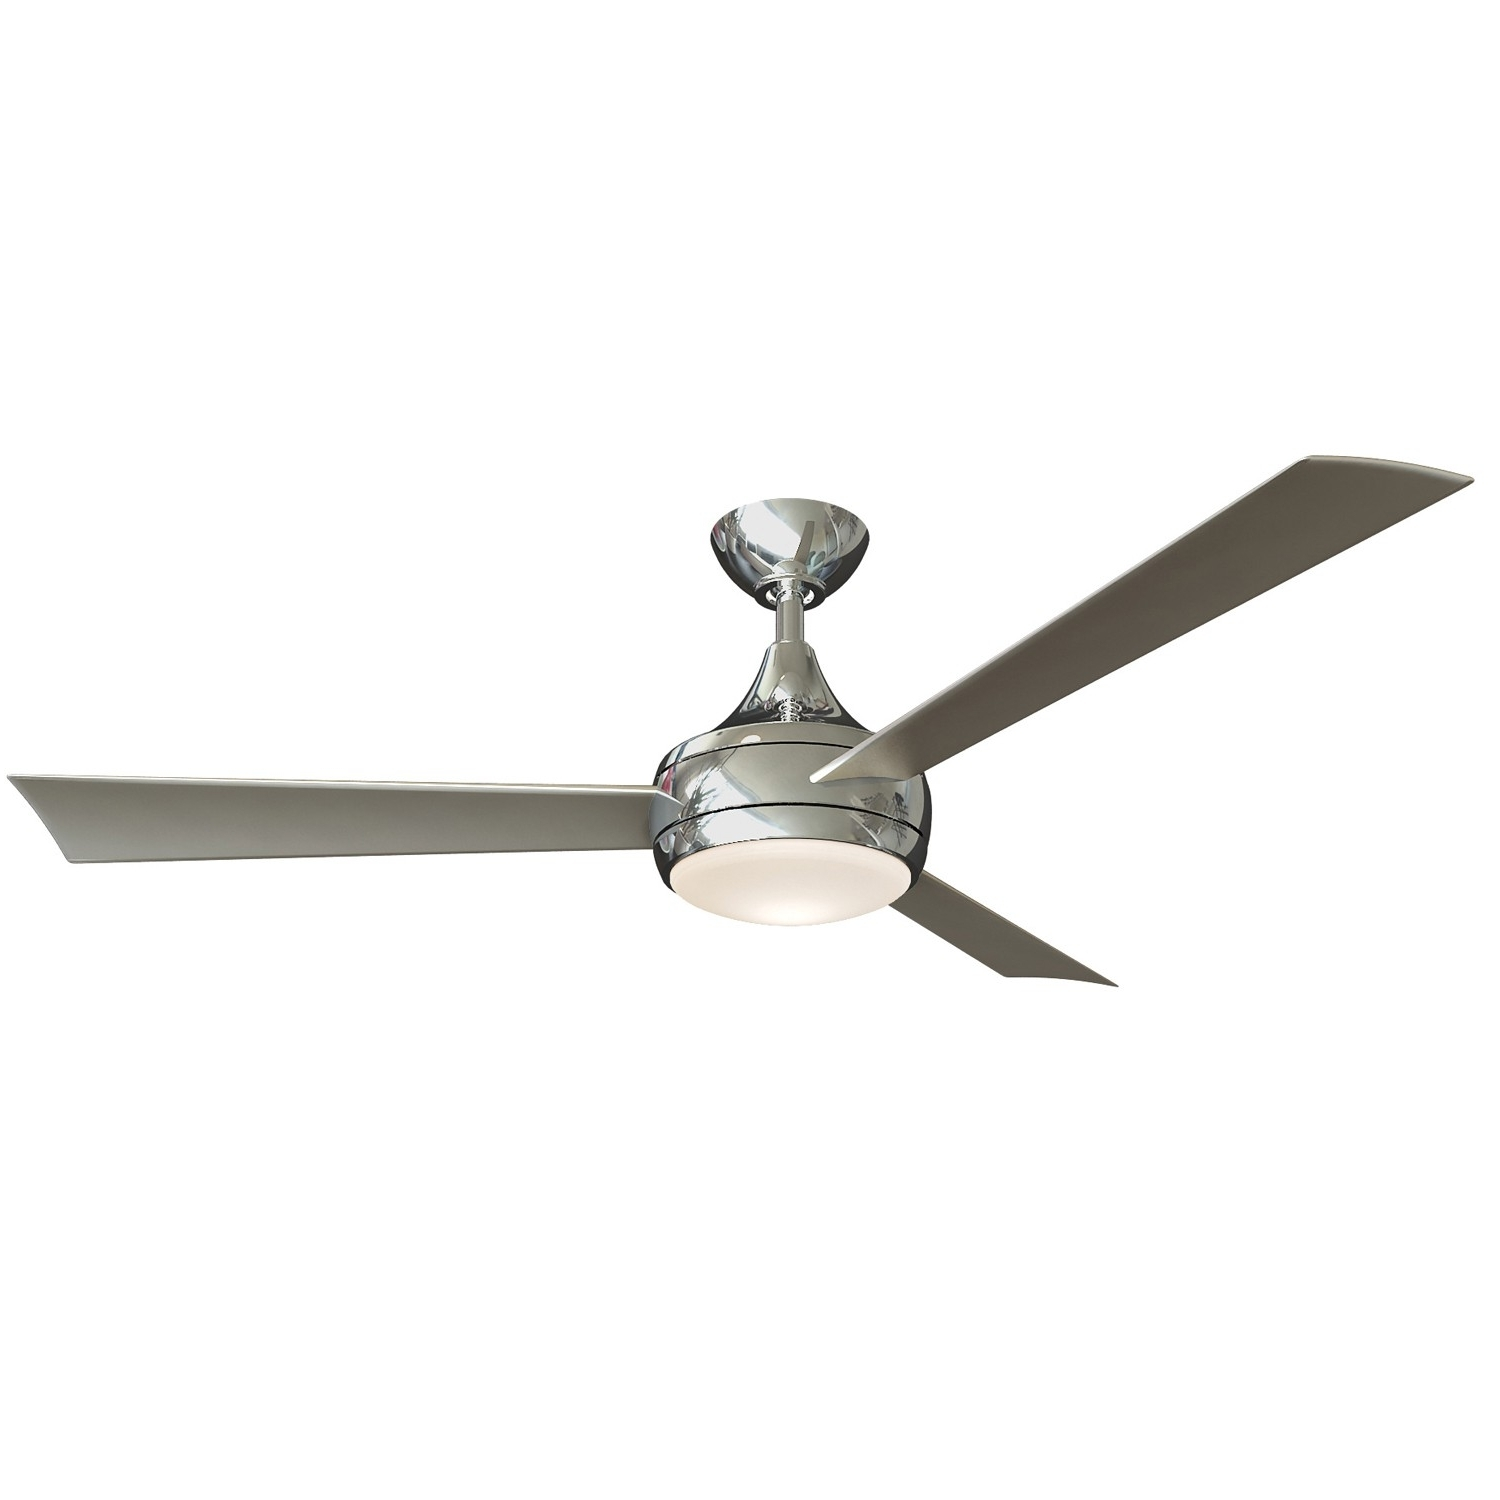 Stainless Steel Outdoor Ceiling Fans Intended For 2019 Stainless Steel Ceiling Fans Without Lights Cute Outdoor Ceiling Fan (View 8 of 20)